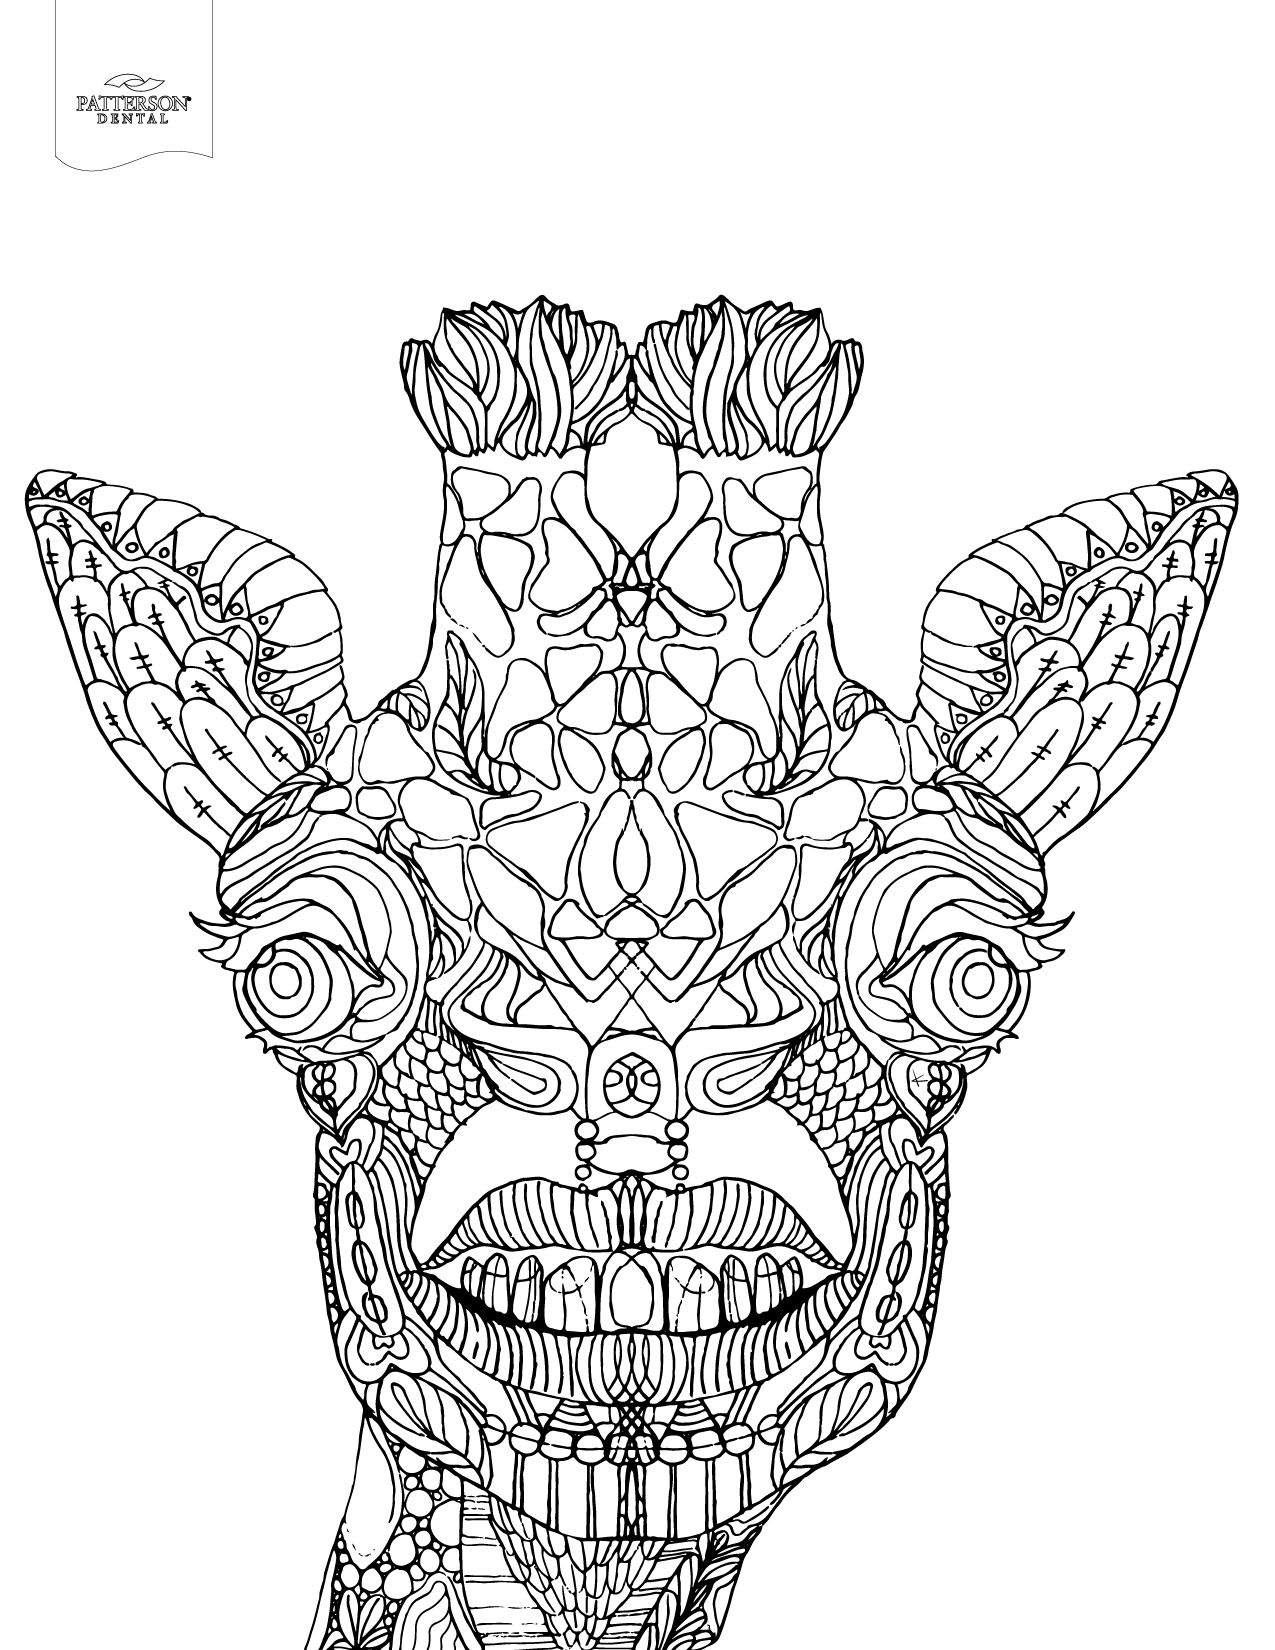 coloring free free printable tangled coloring pages for kids free coloring 1 1